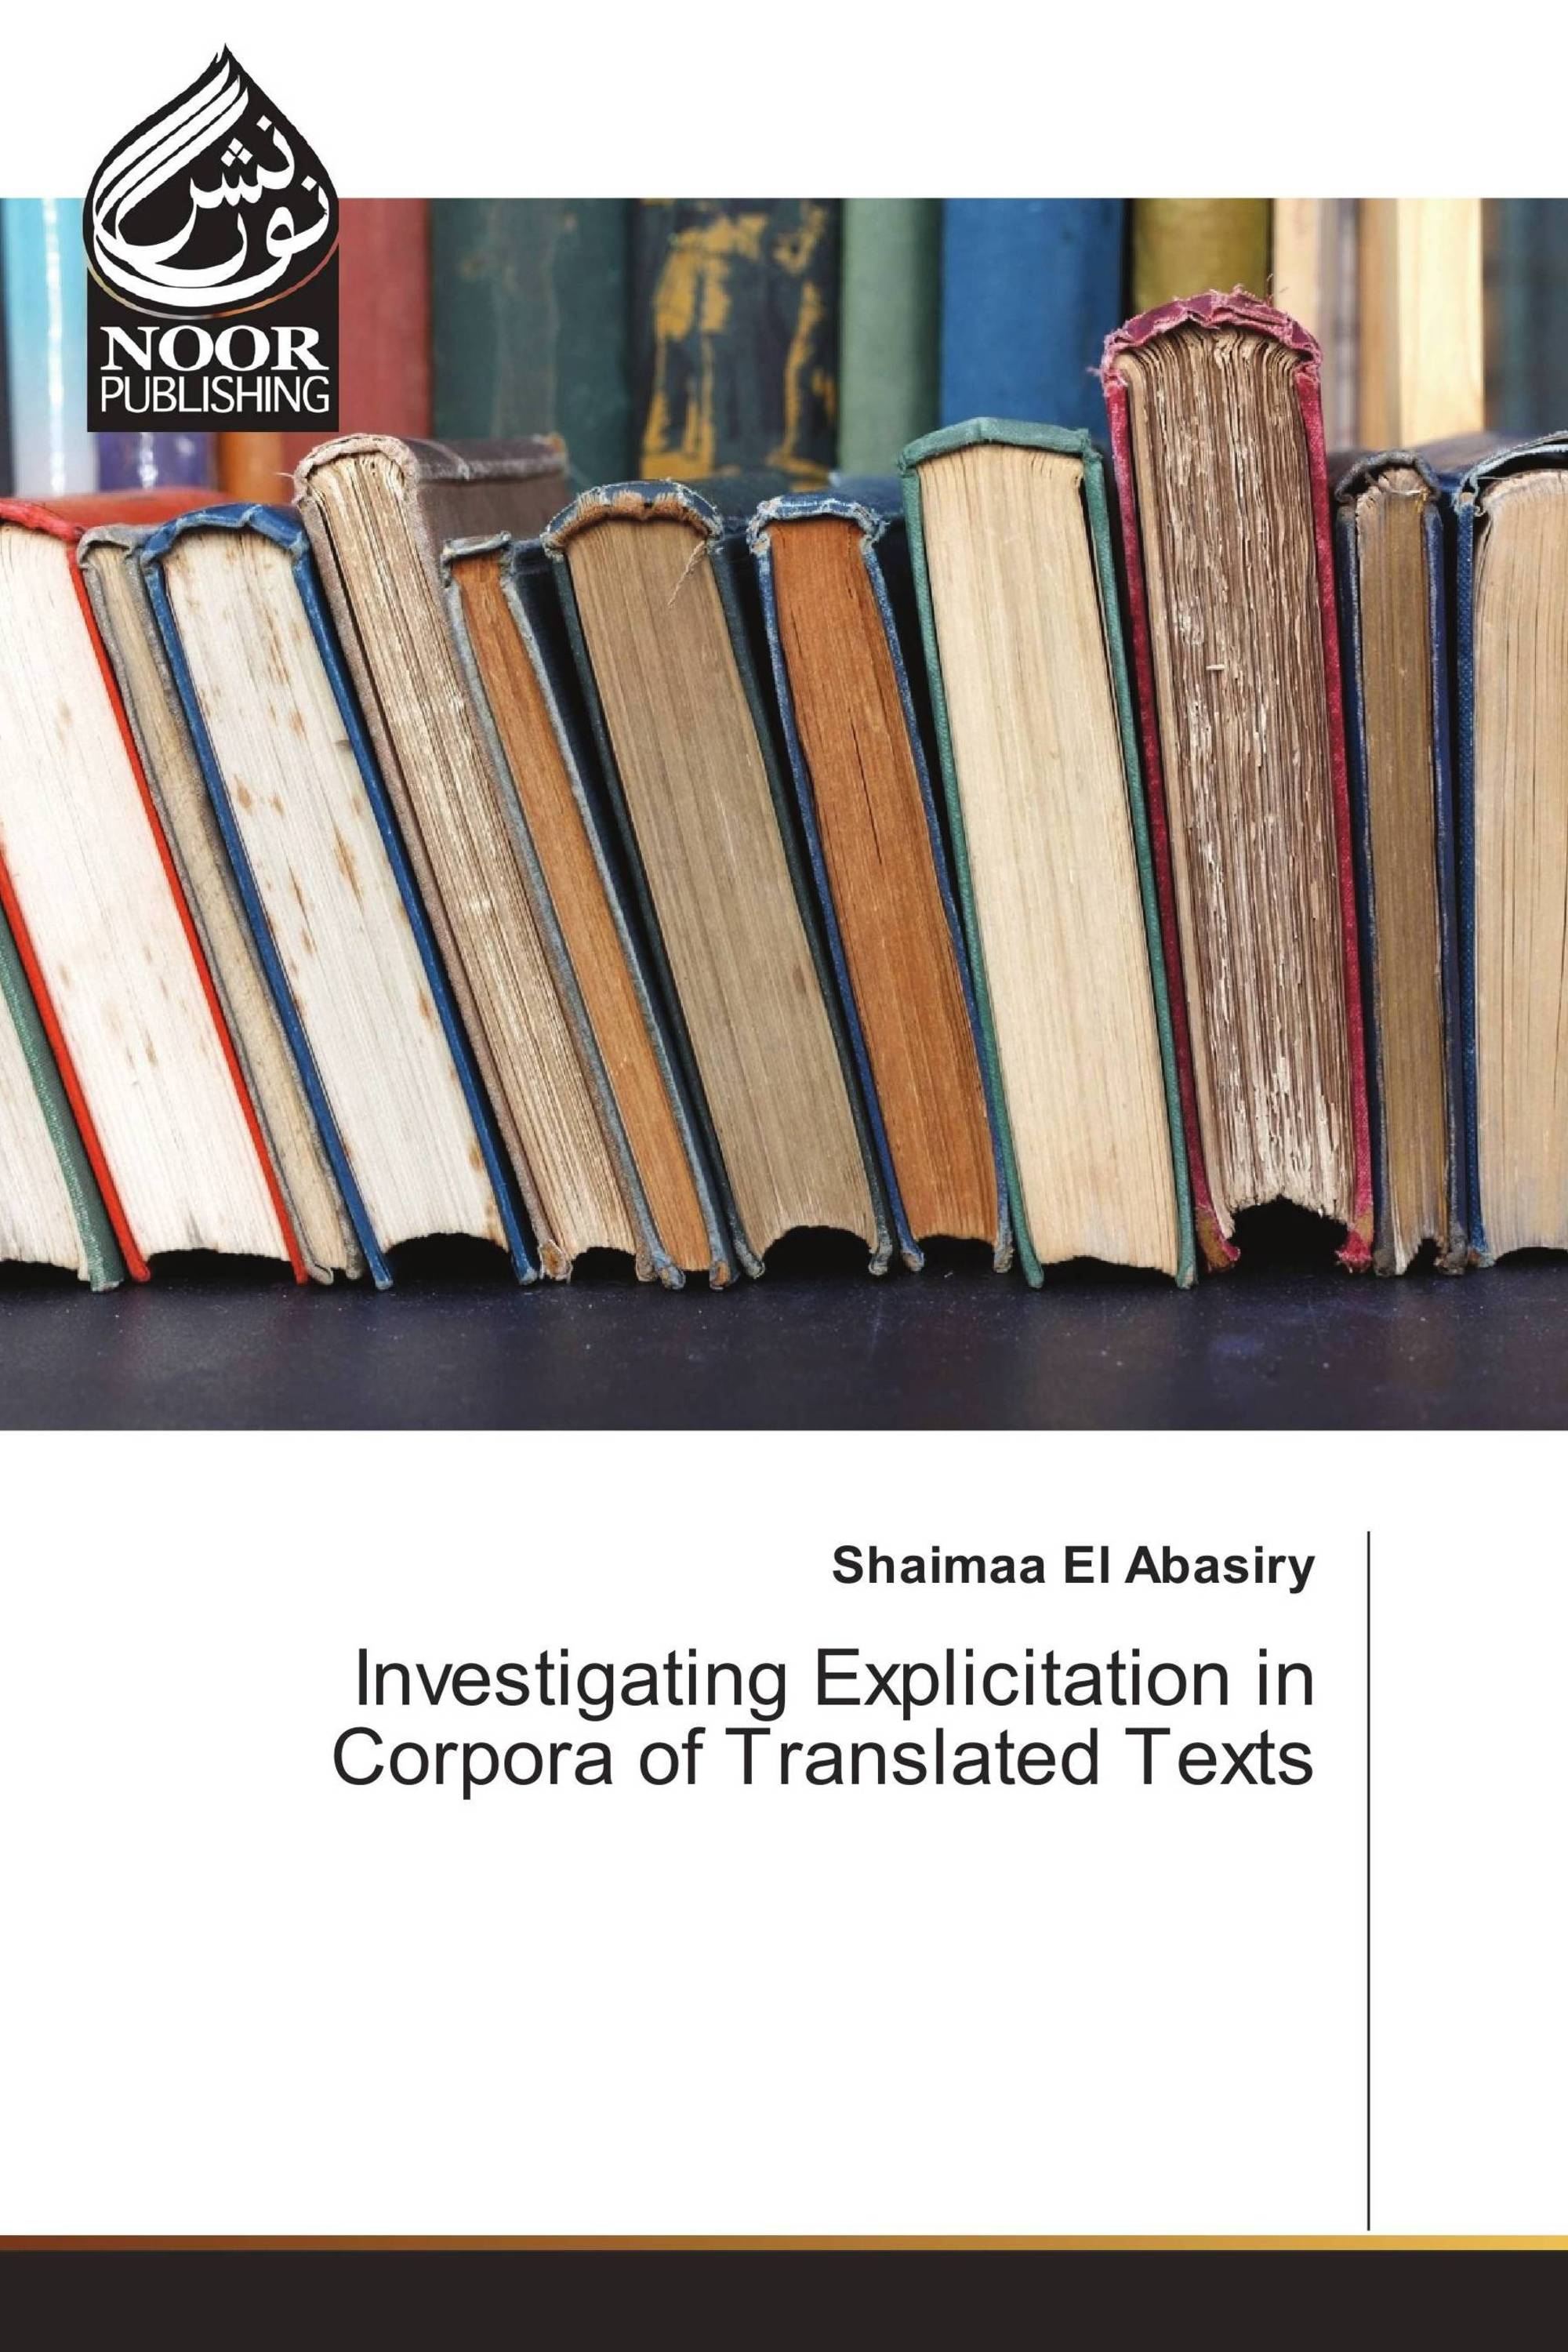 Investigating Explicitation in Corpora of Translated Texts